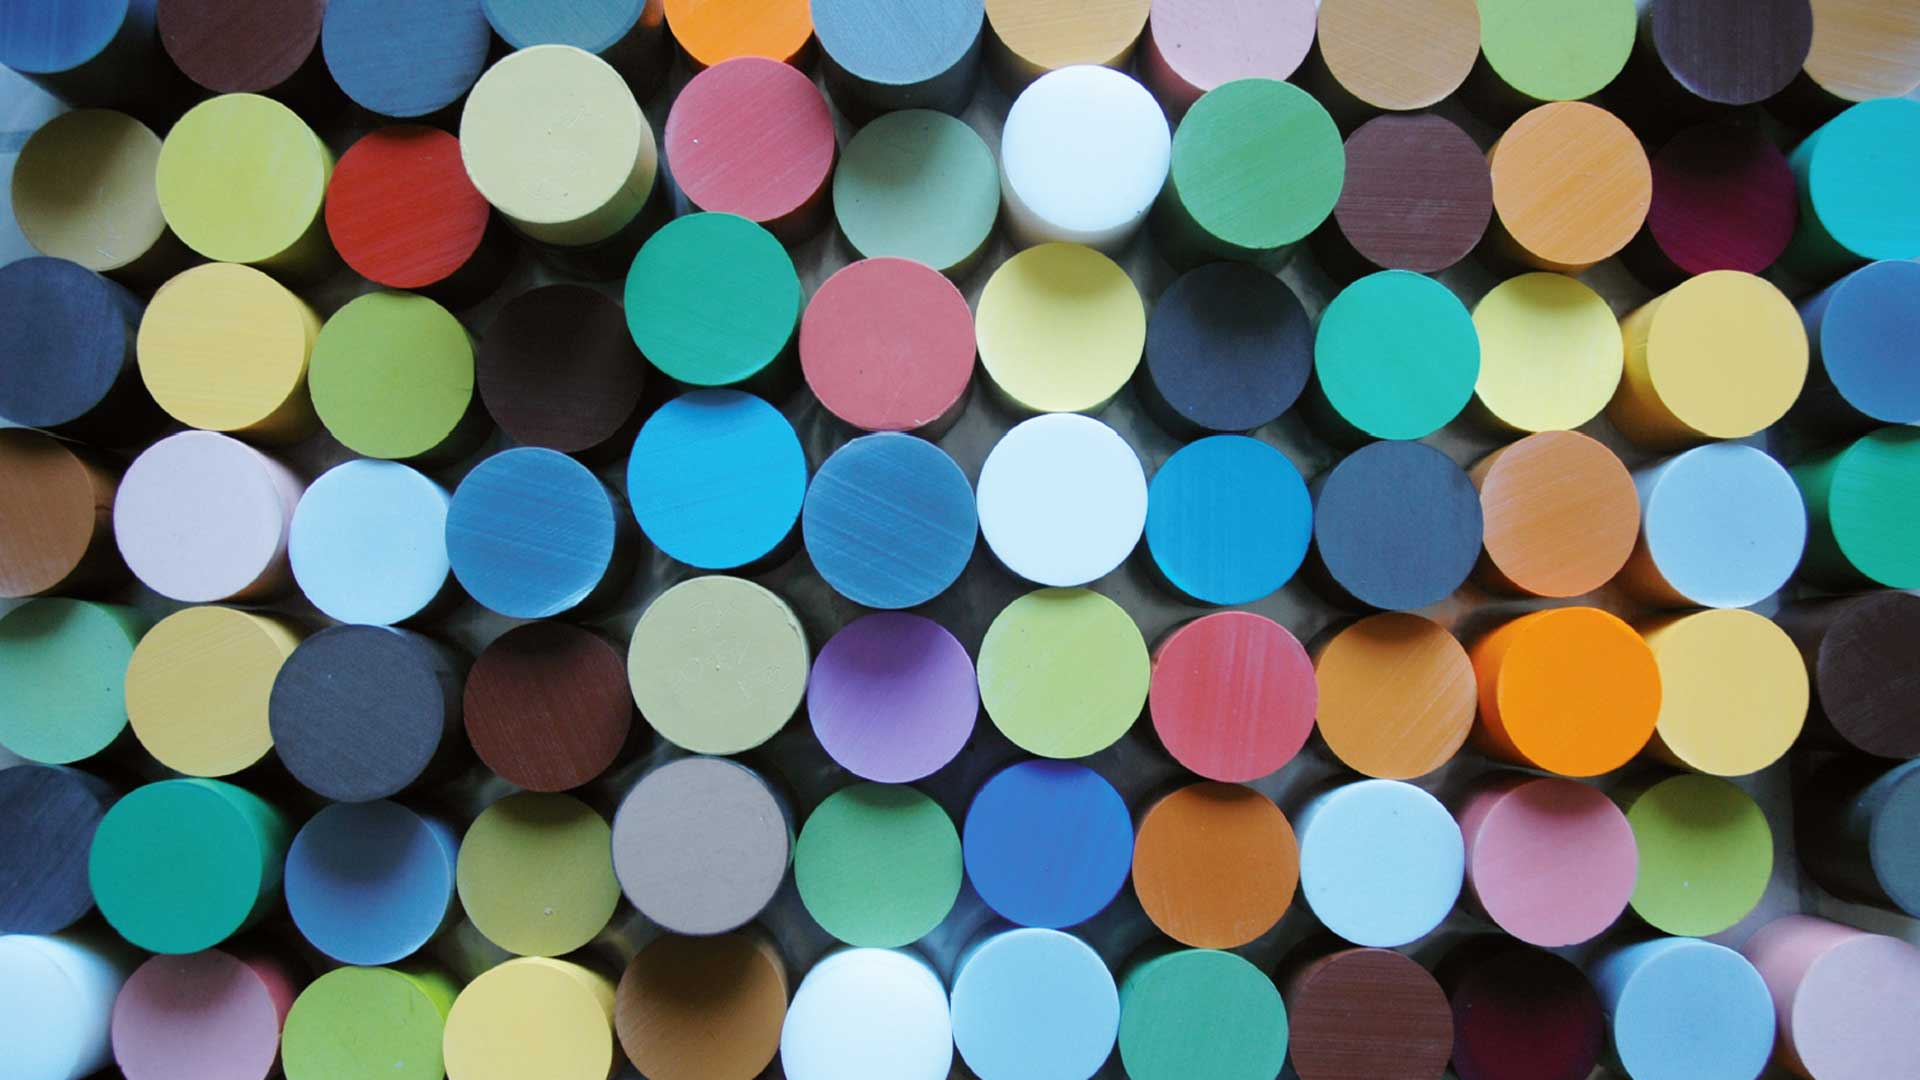 Specialists in fluoropolymers